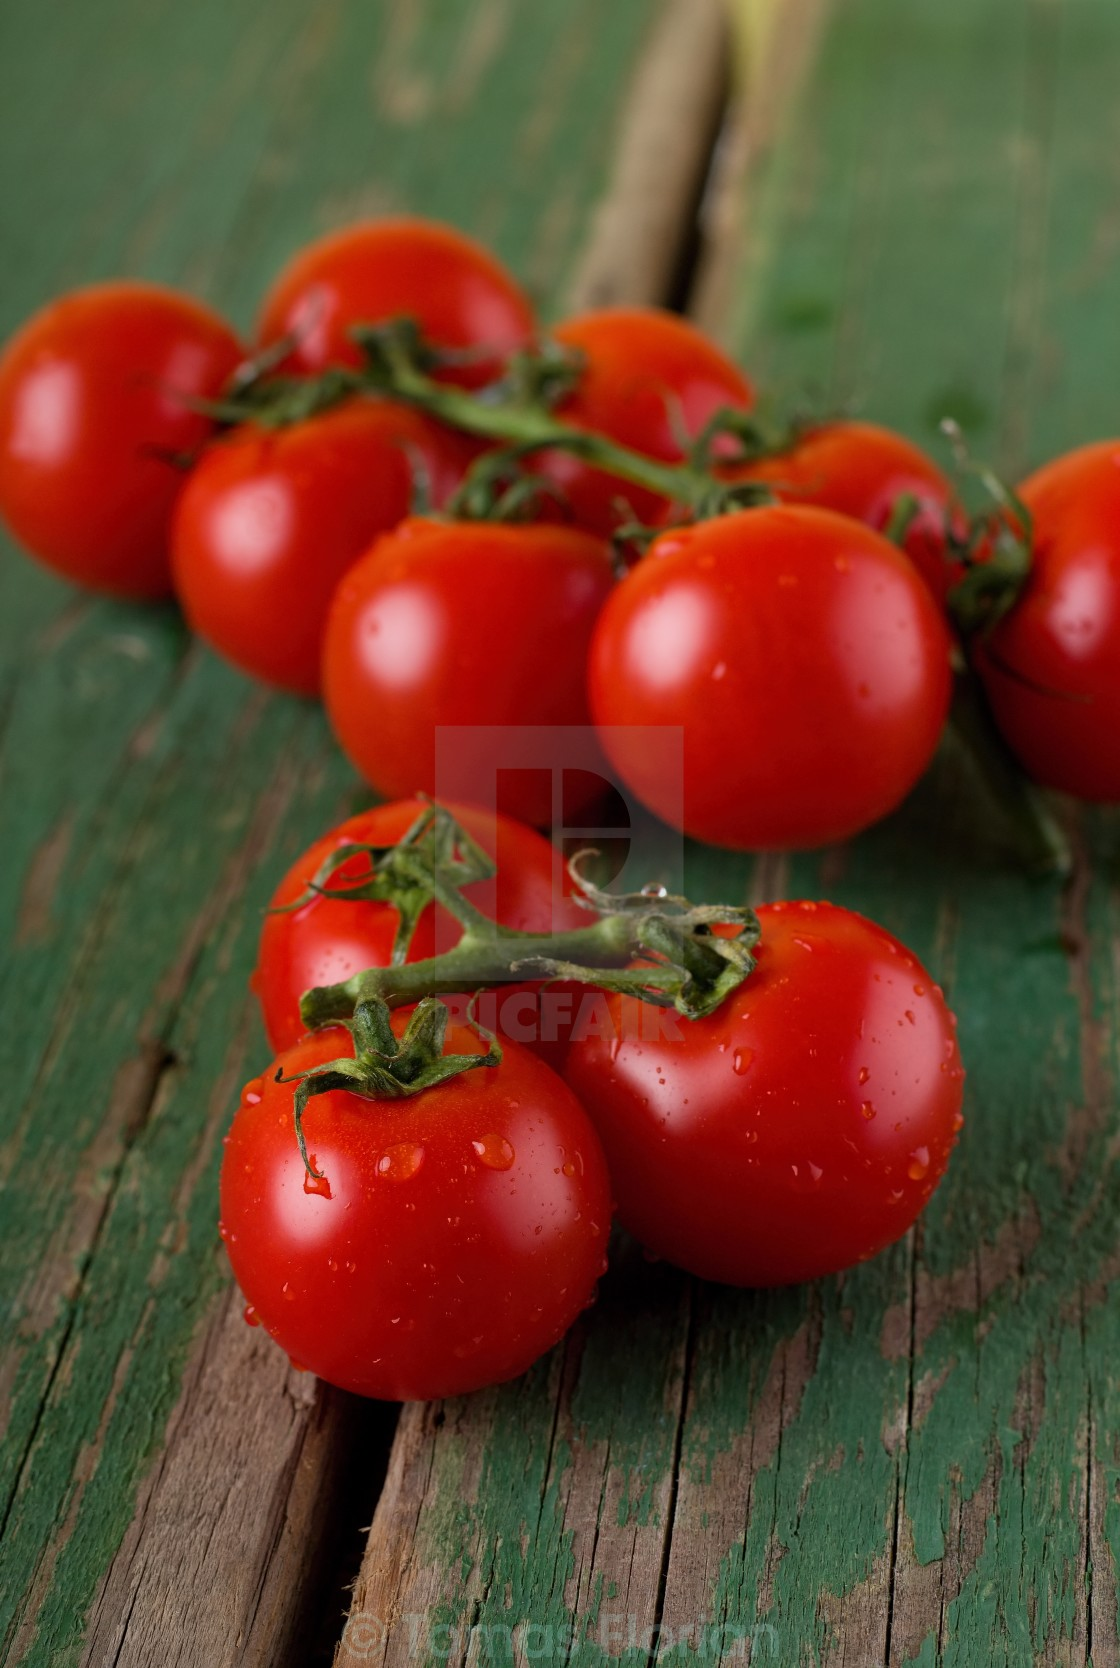 """Juicy cherry tomatoes on green table"" stock image"